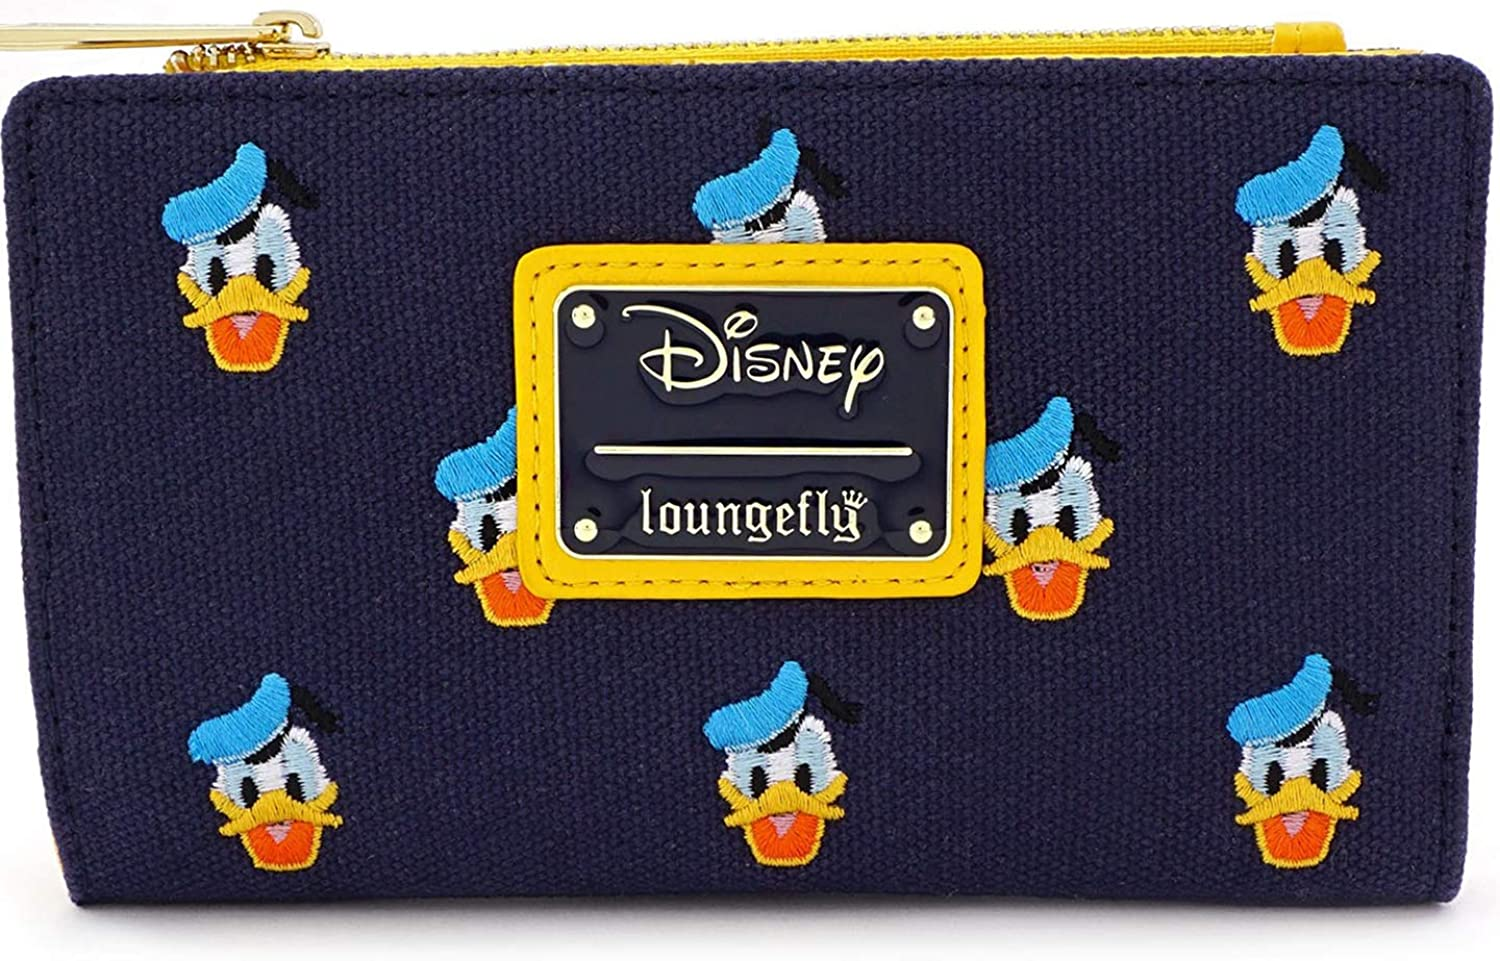 Loungefly x Disney Donald Duck All-Over Print Embroidered Canvas Zip Wallet